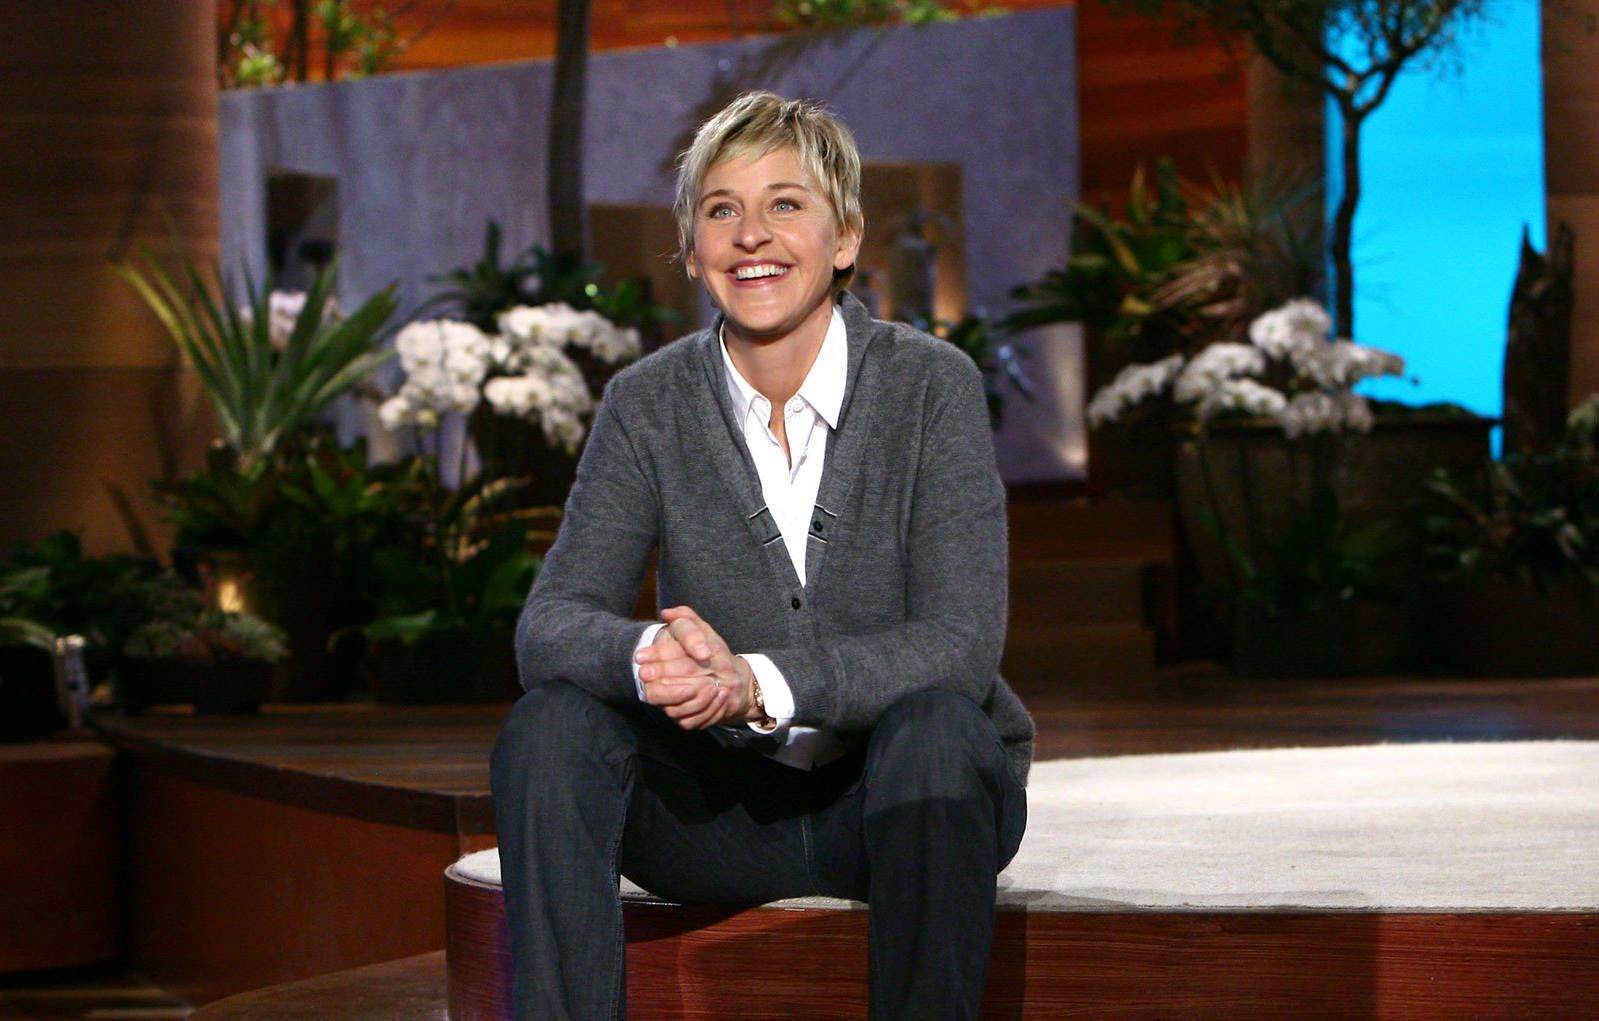 No matter what you're going through, comedian, talk show host, writer, producer and actress Ellen DeGeneres has plenty of great quotes to help you out...   #celebrities #ellendegeneres #quotes